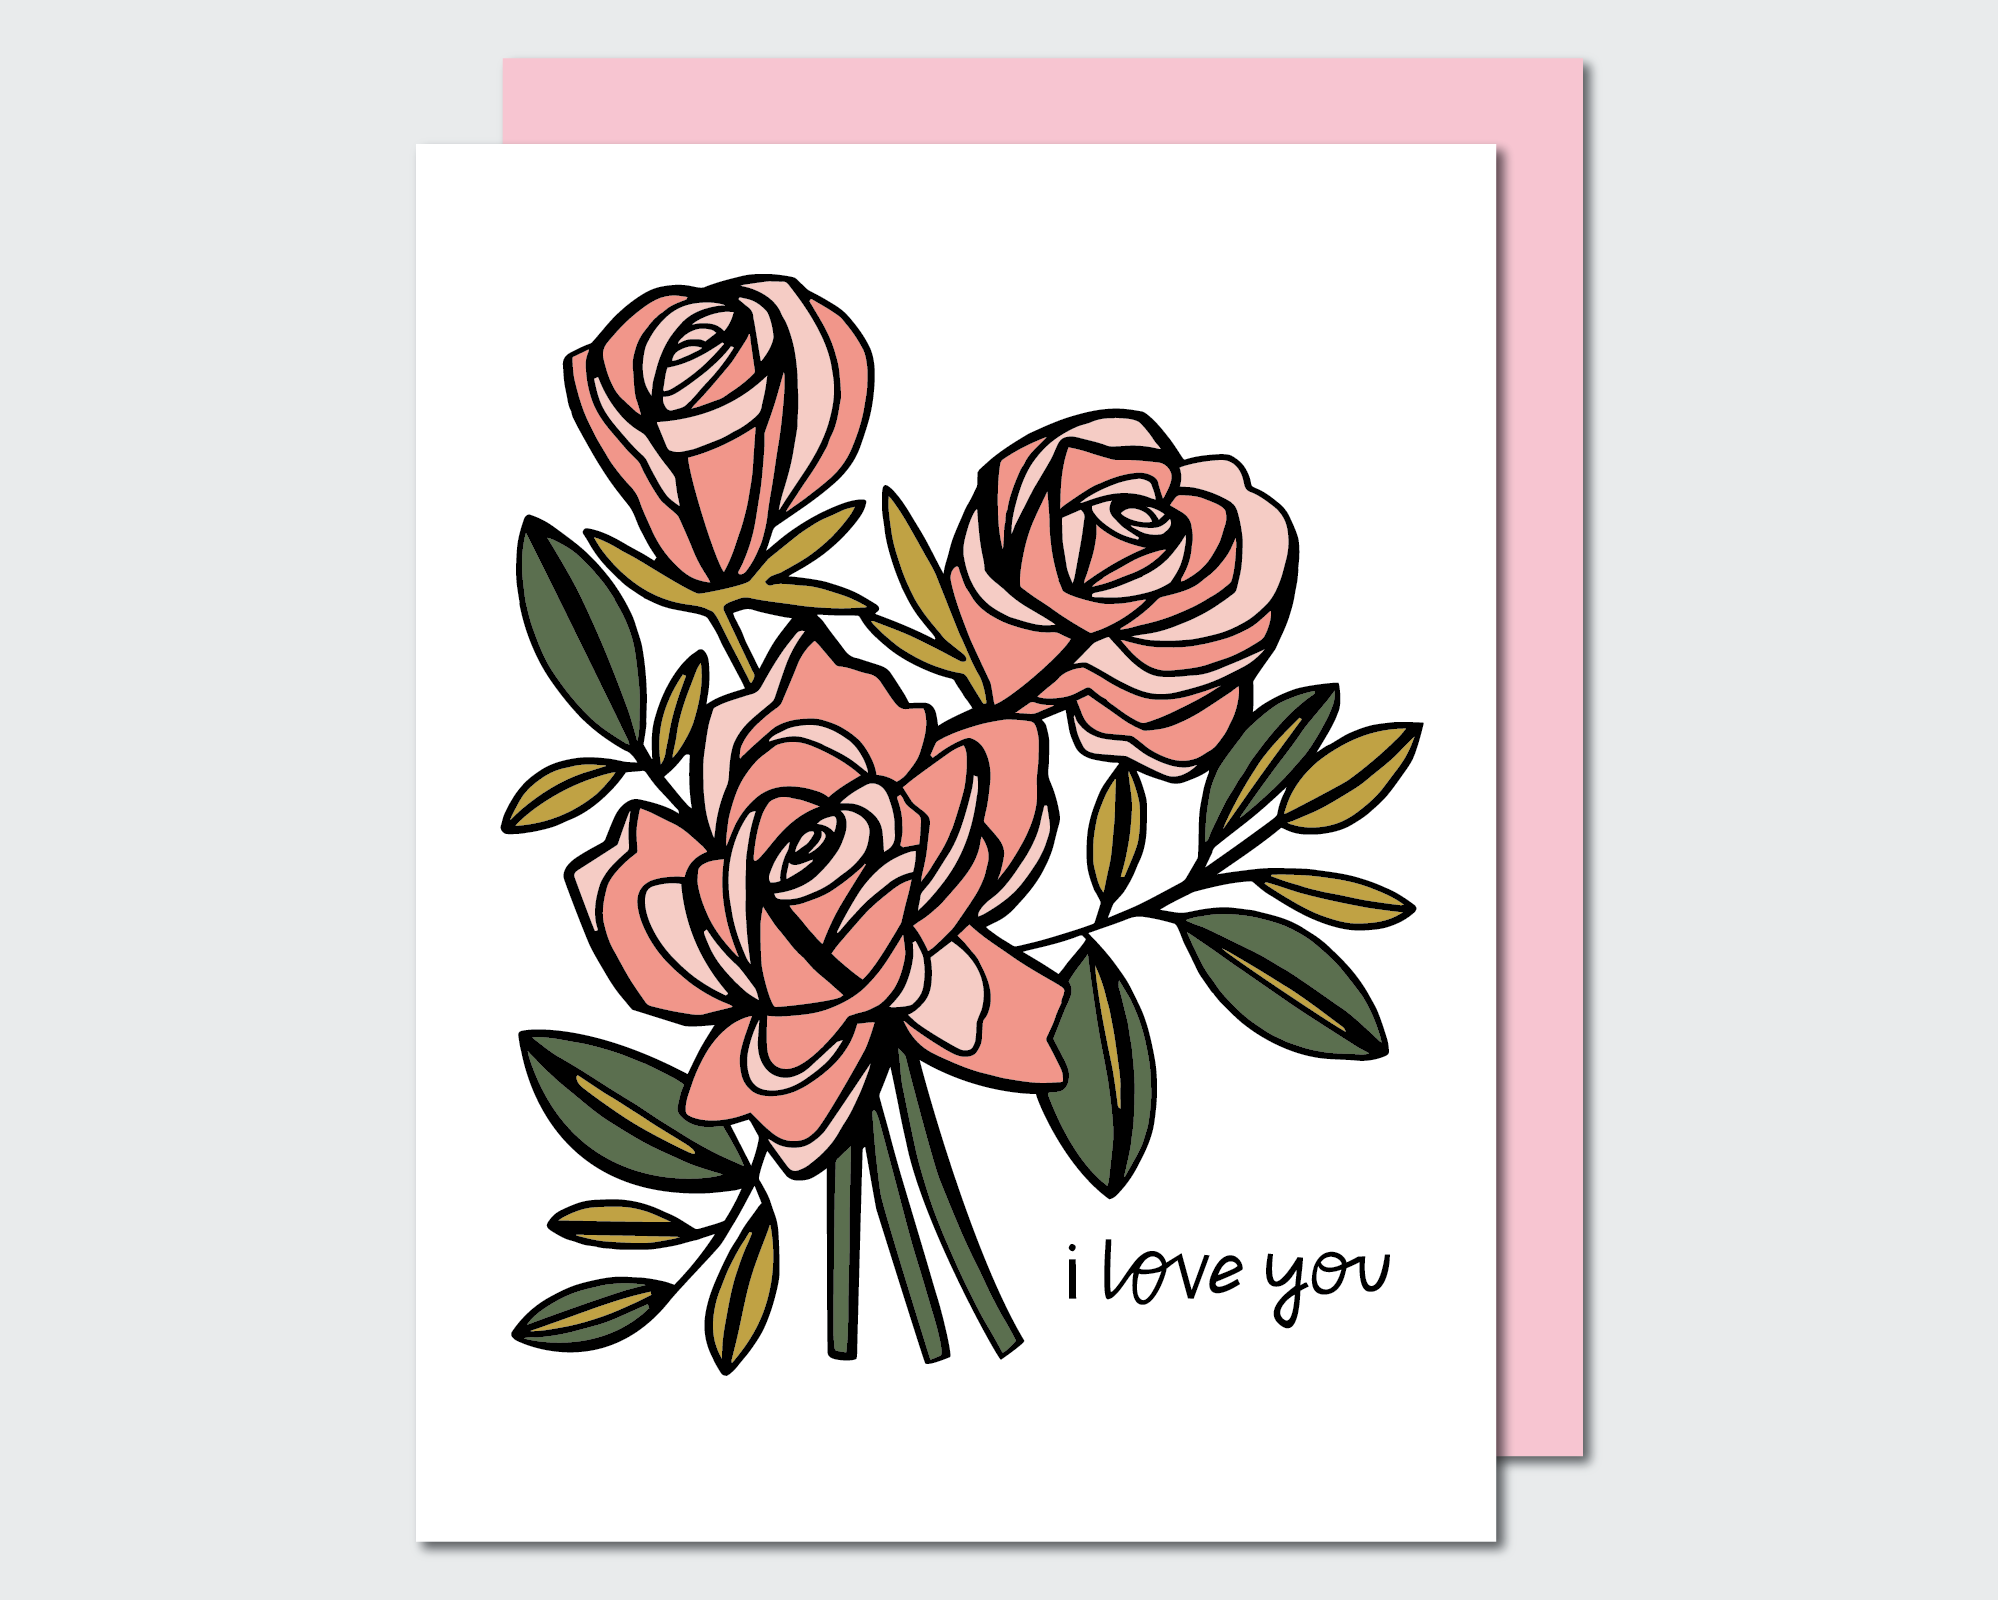 GCL009 (PINK ROSES)